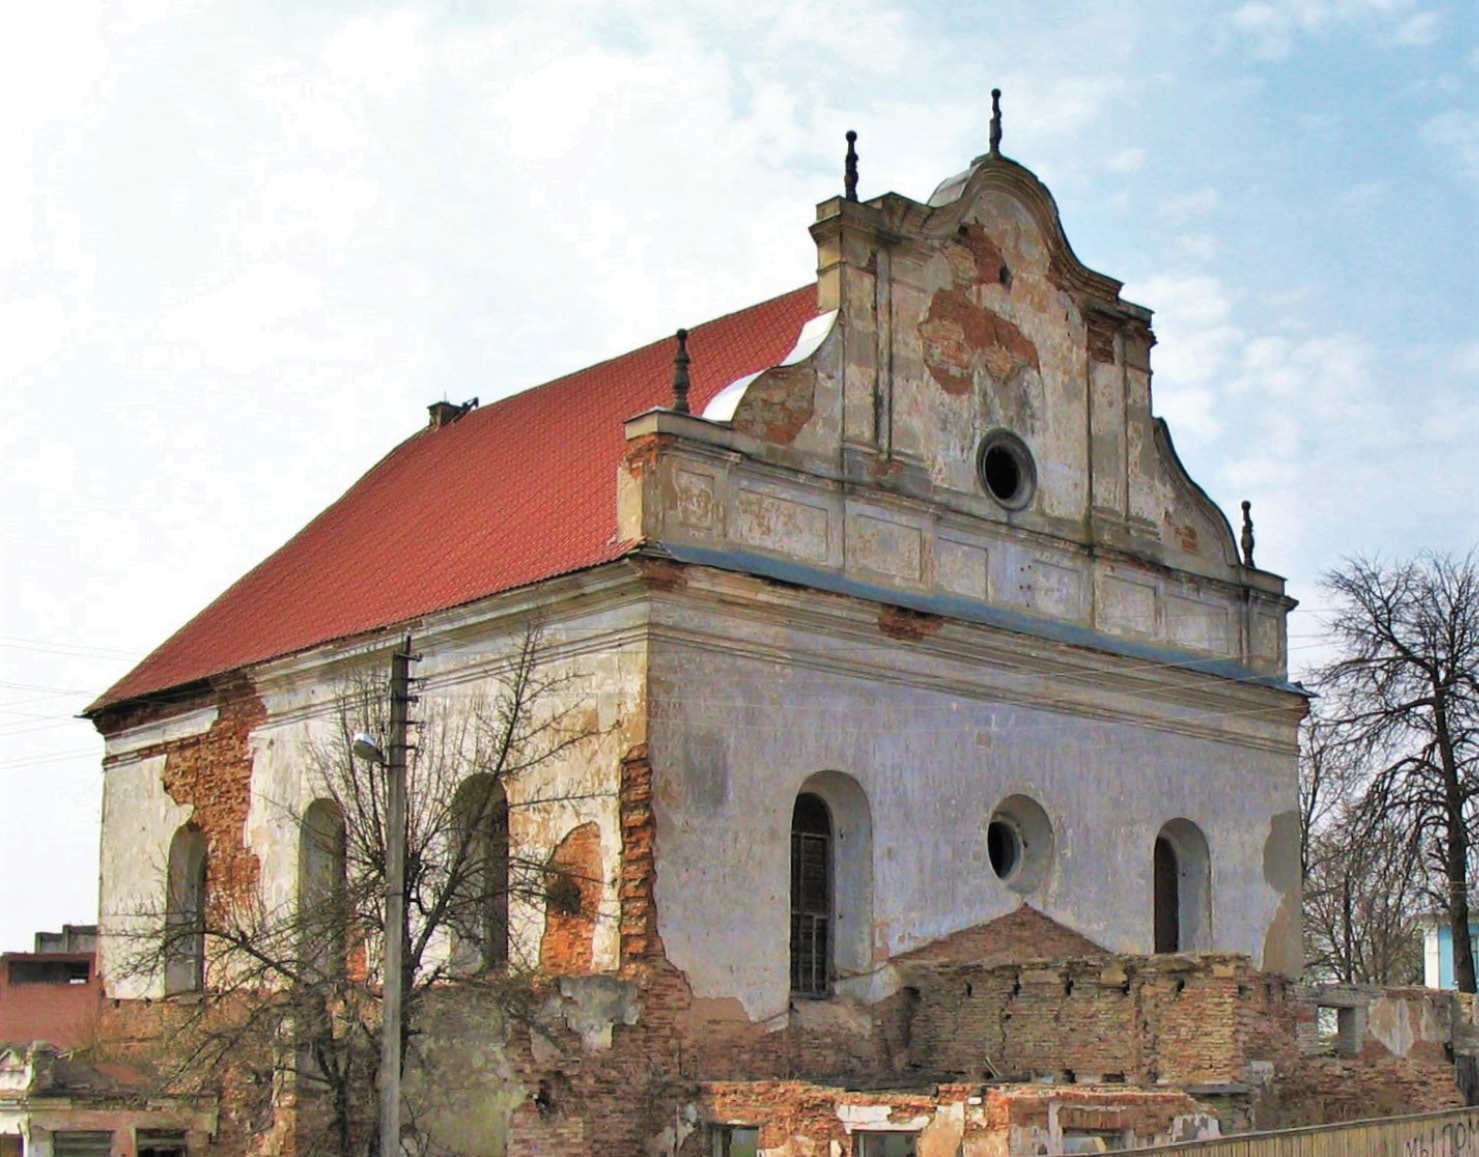 BELOW The Great Synagogue in Slonim, Belarus, currently stands empty and in a state of disrepair.